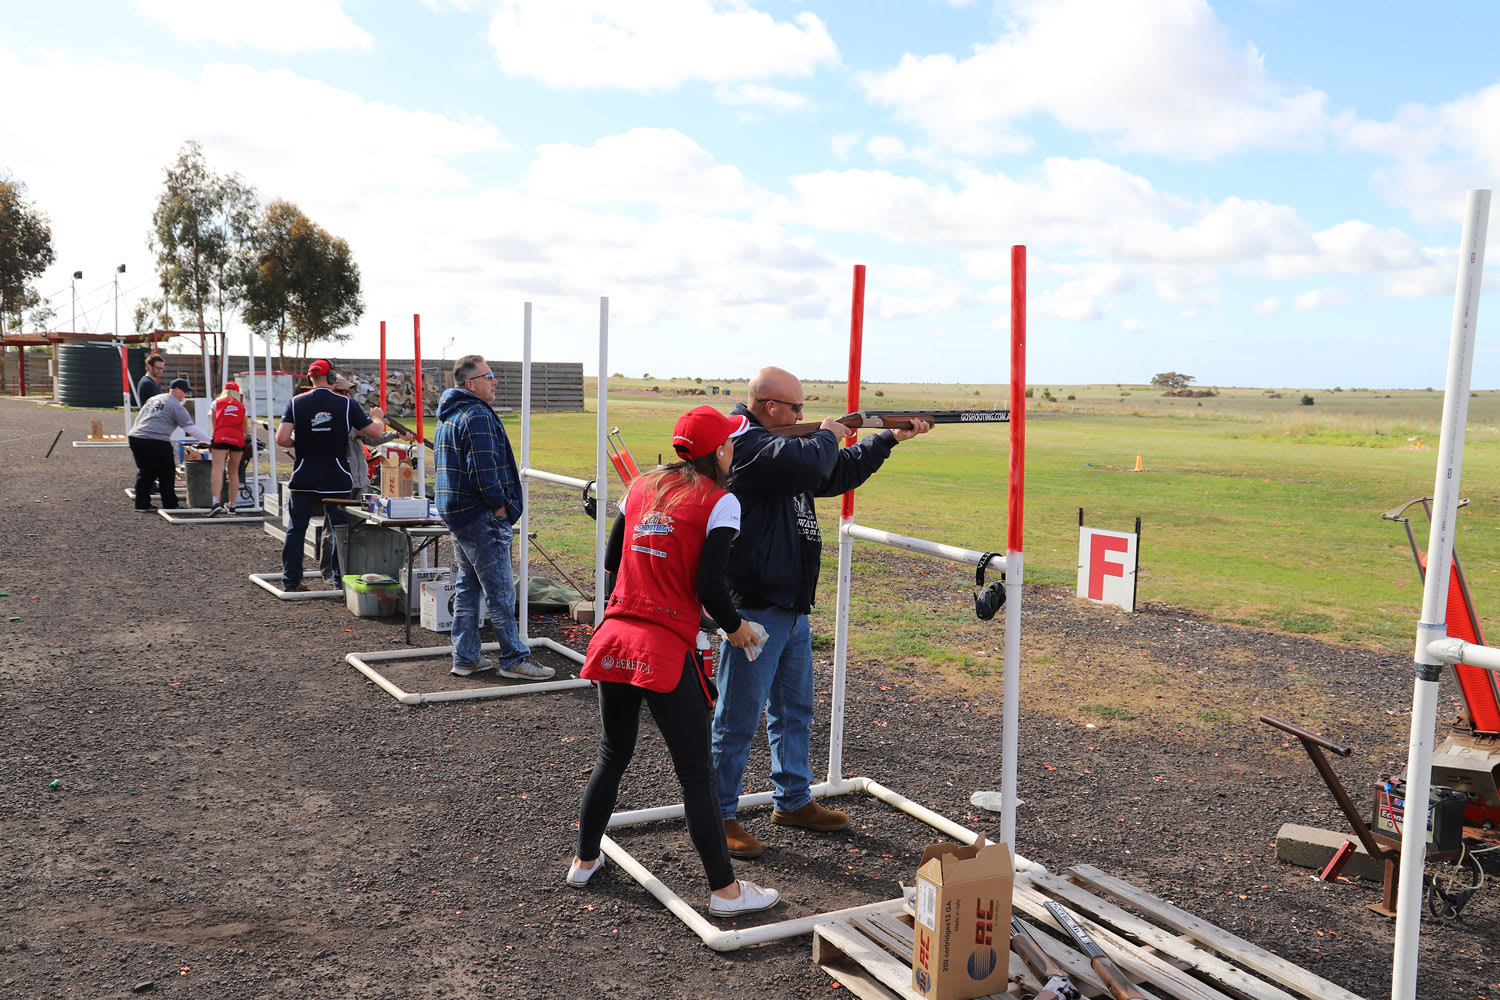 Clay Target Shooting Experience - Quandong, Melbourne